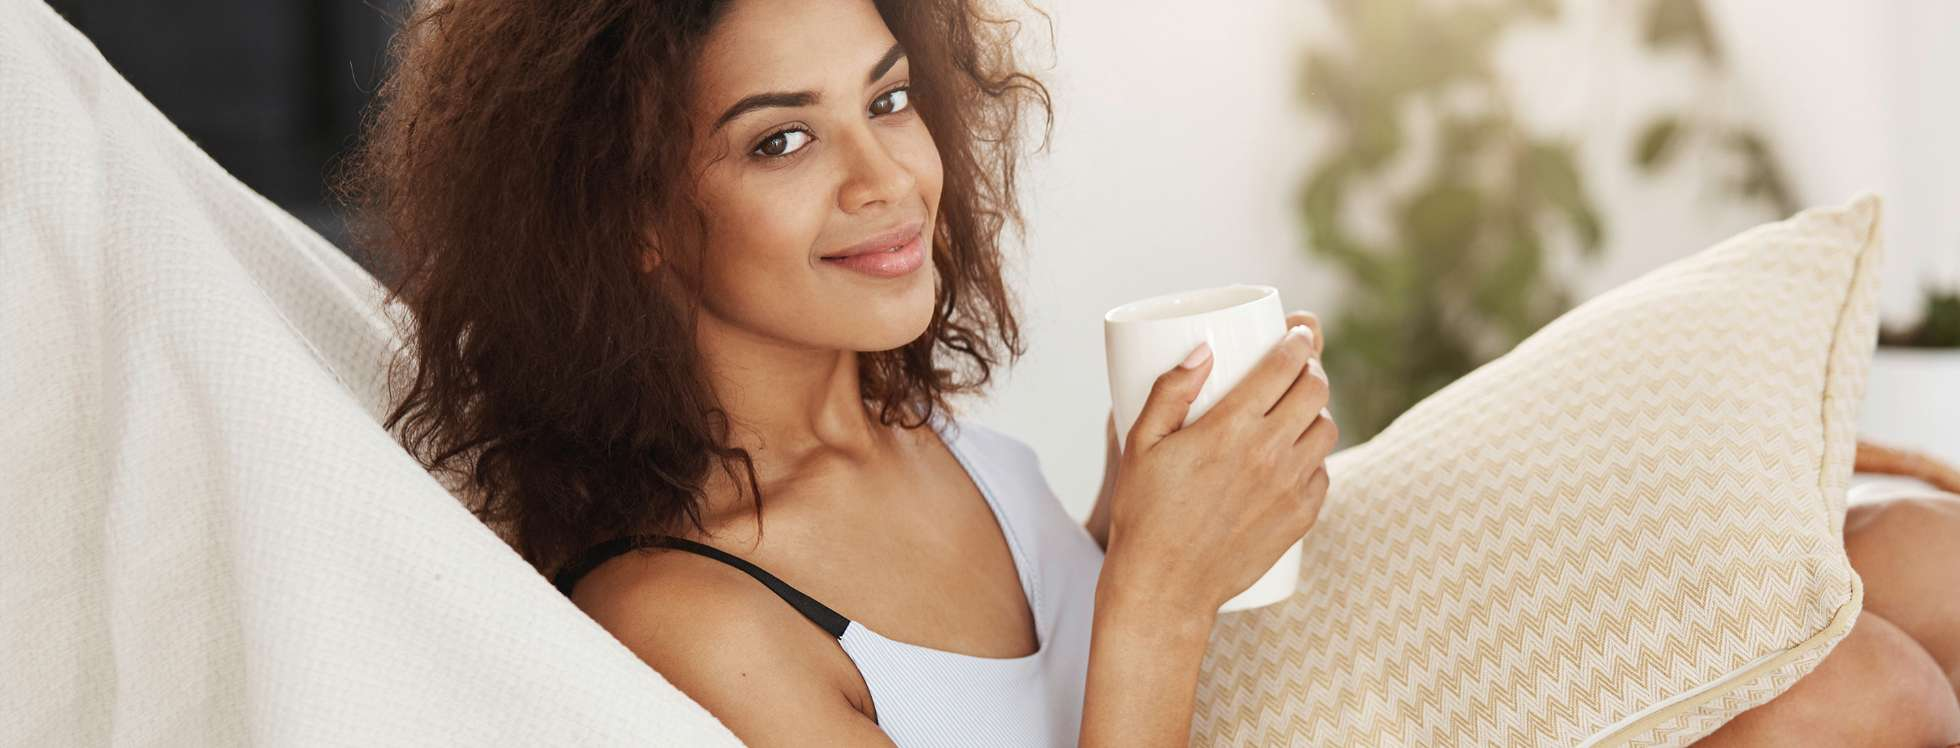 A smiling woman relaxing with a hot drink